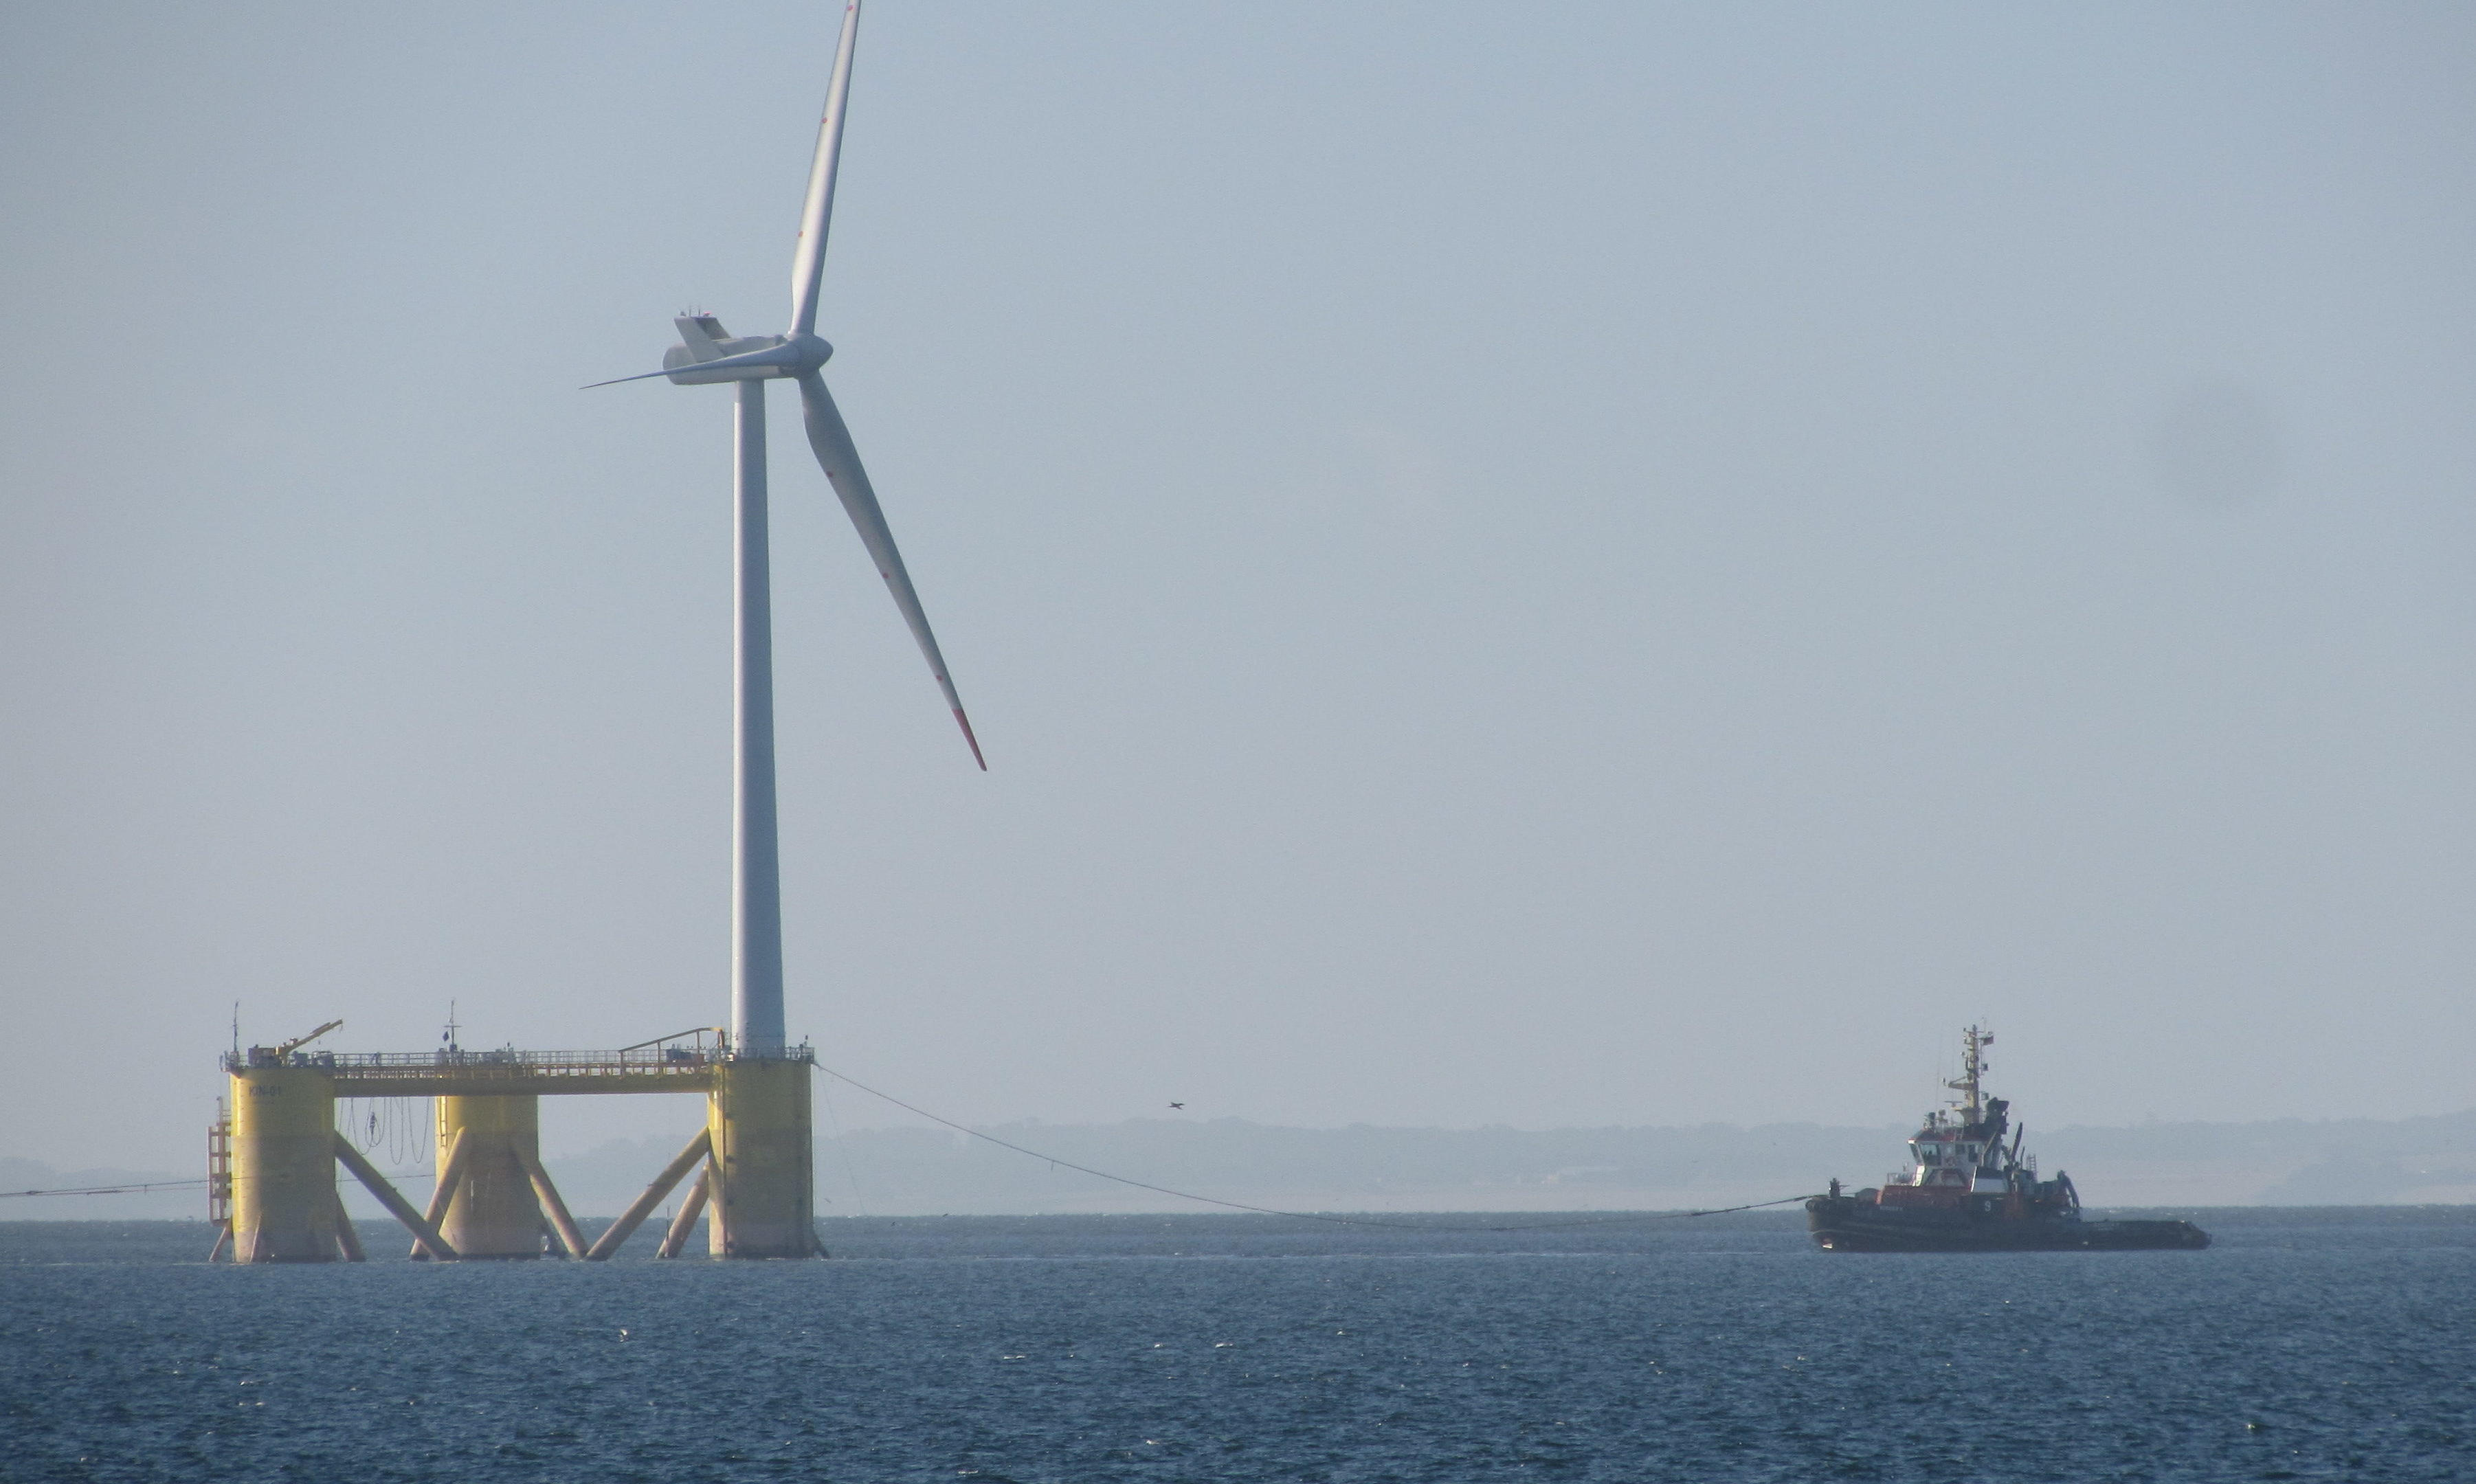 The offshore wind turbine makes its way down the Tay.